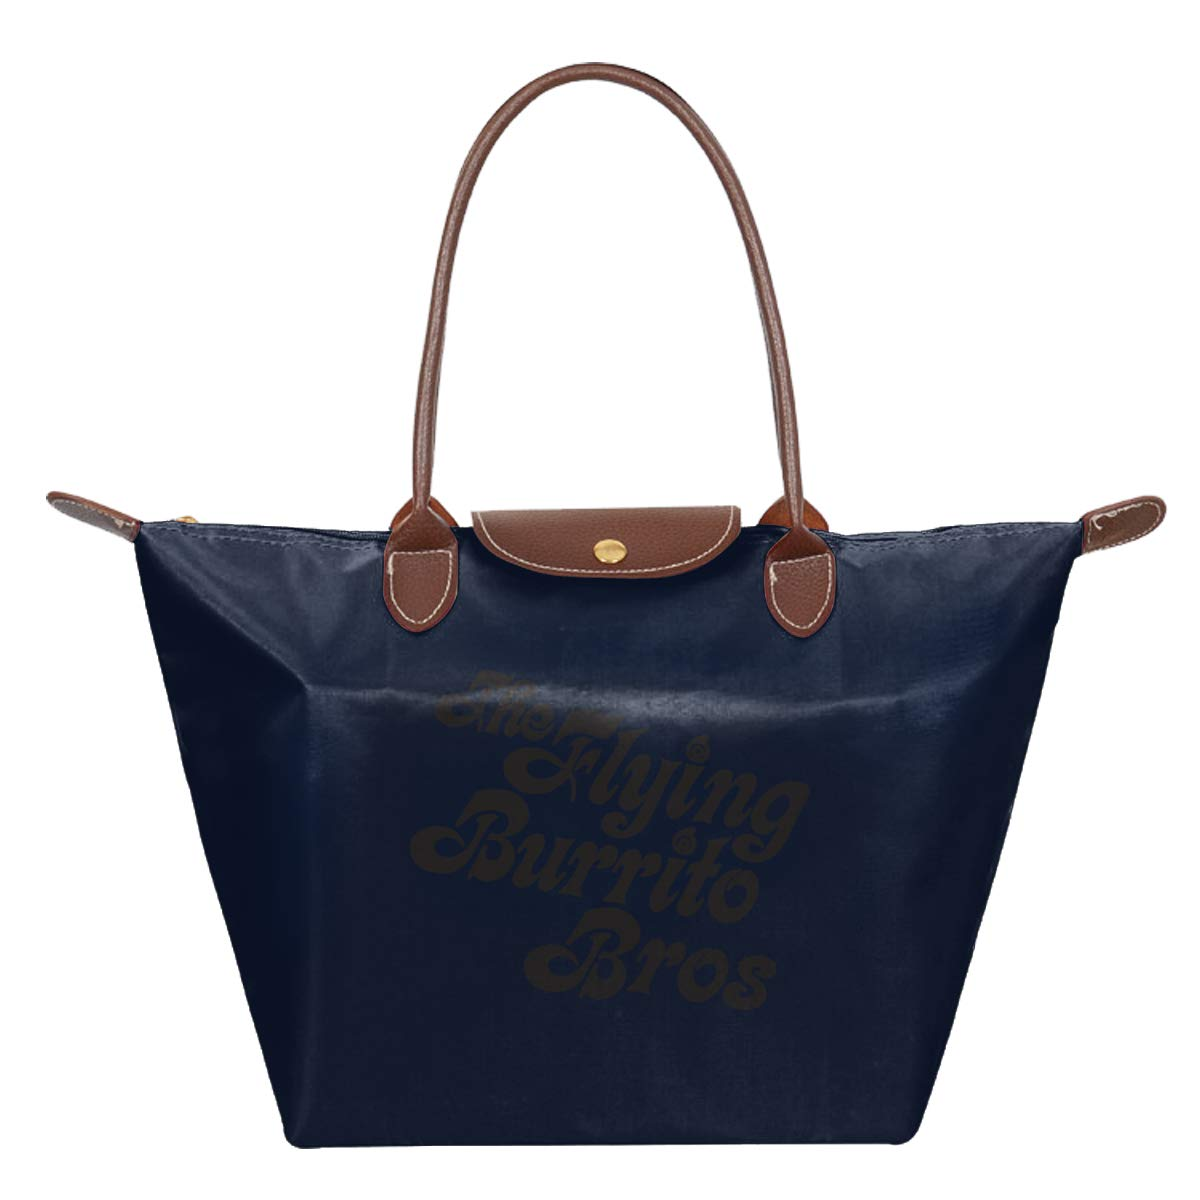 The Flying Burrito Brothers Waterproof Leather Folded Messenger Nylon Bag Travel Tote Hopping Folding School Handbags